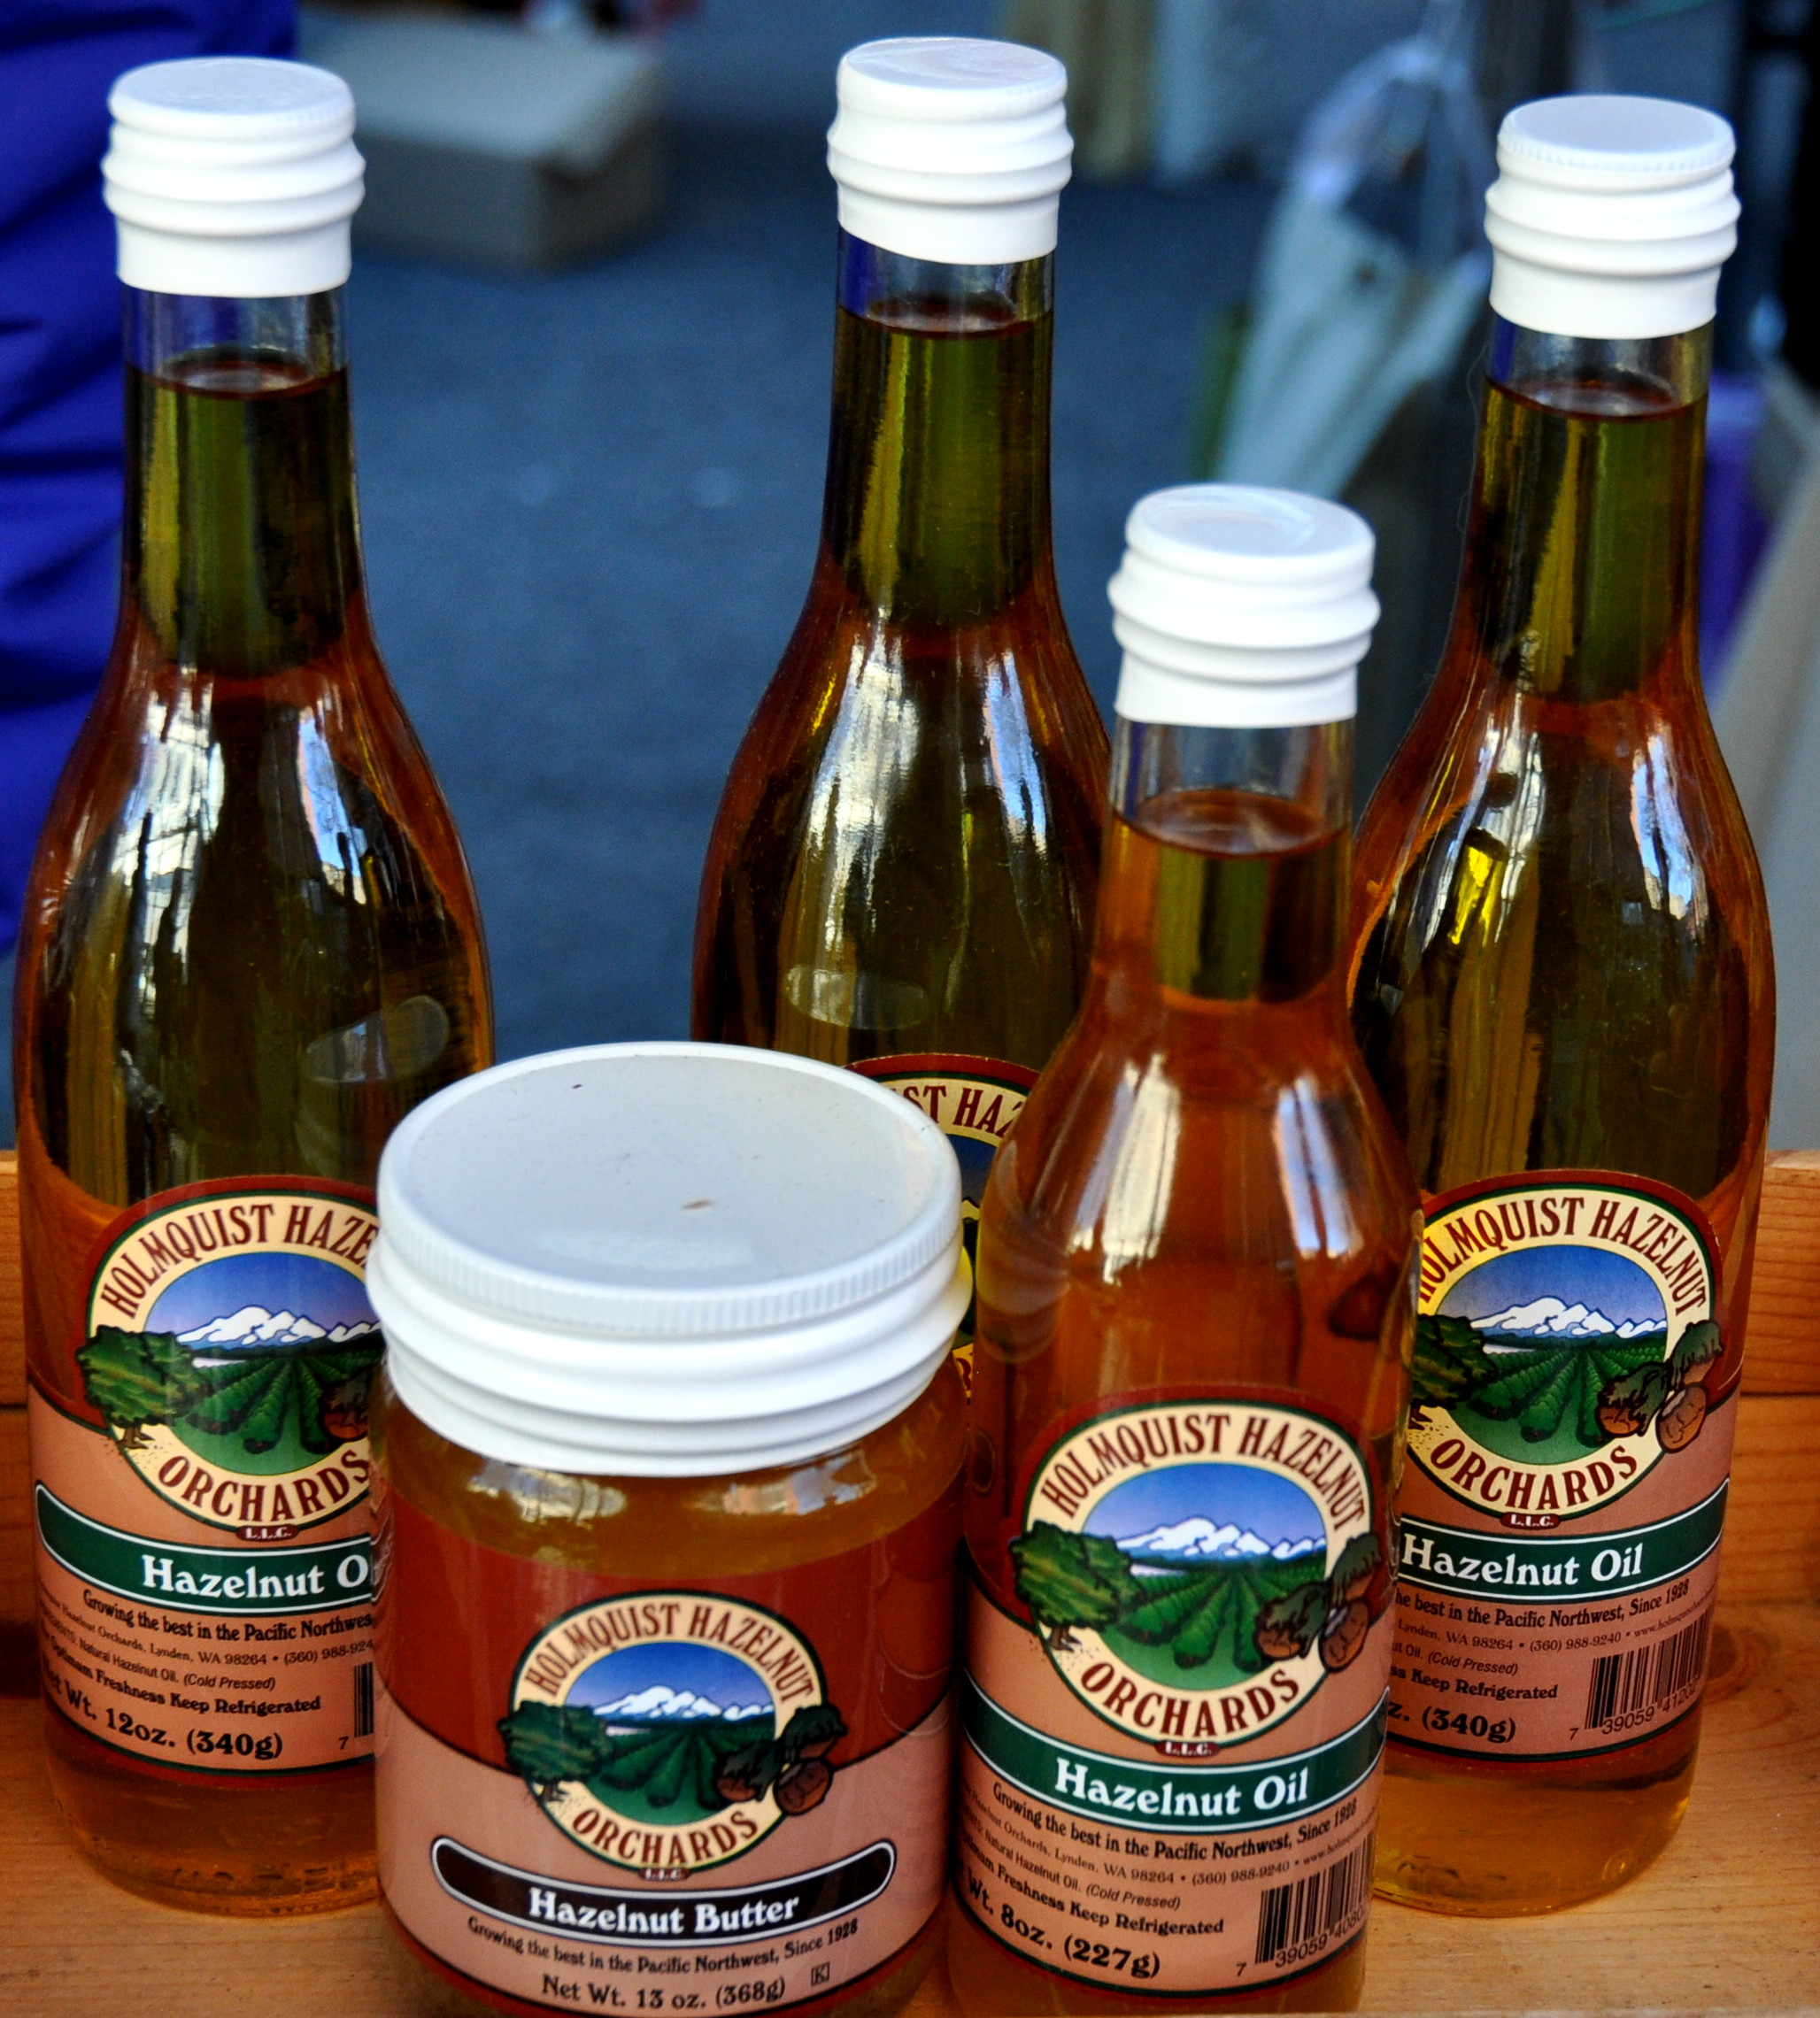 Hazelnut oil and butter from Holmquist Hazelnut Orchards at Ballard Farmers Market. Copyright Zachary D. Lyons.